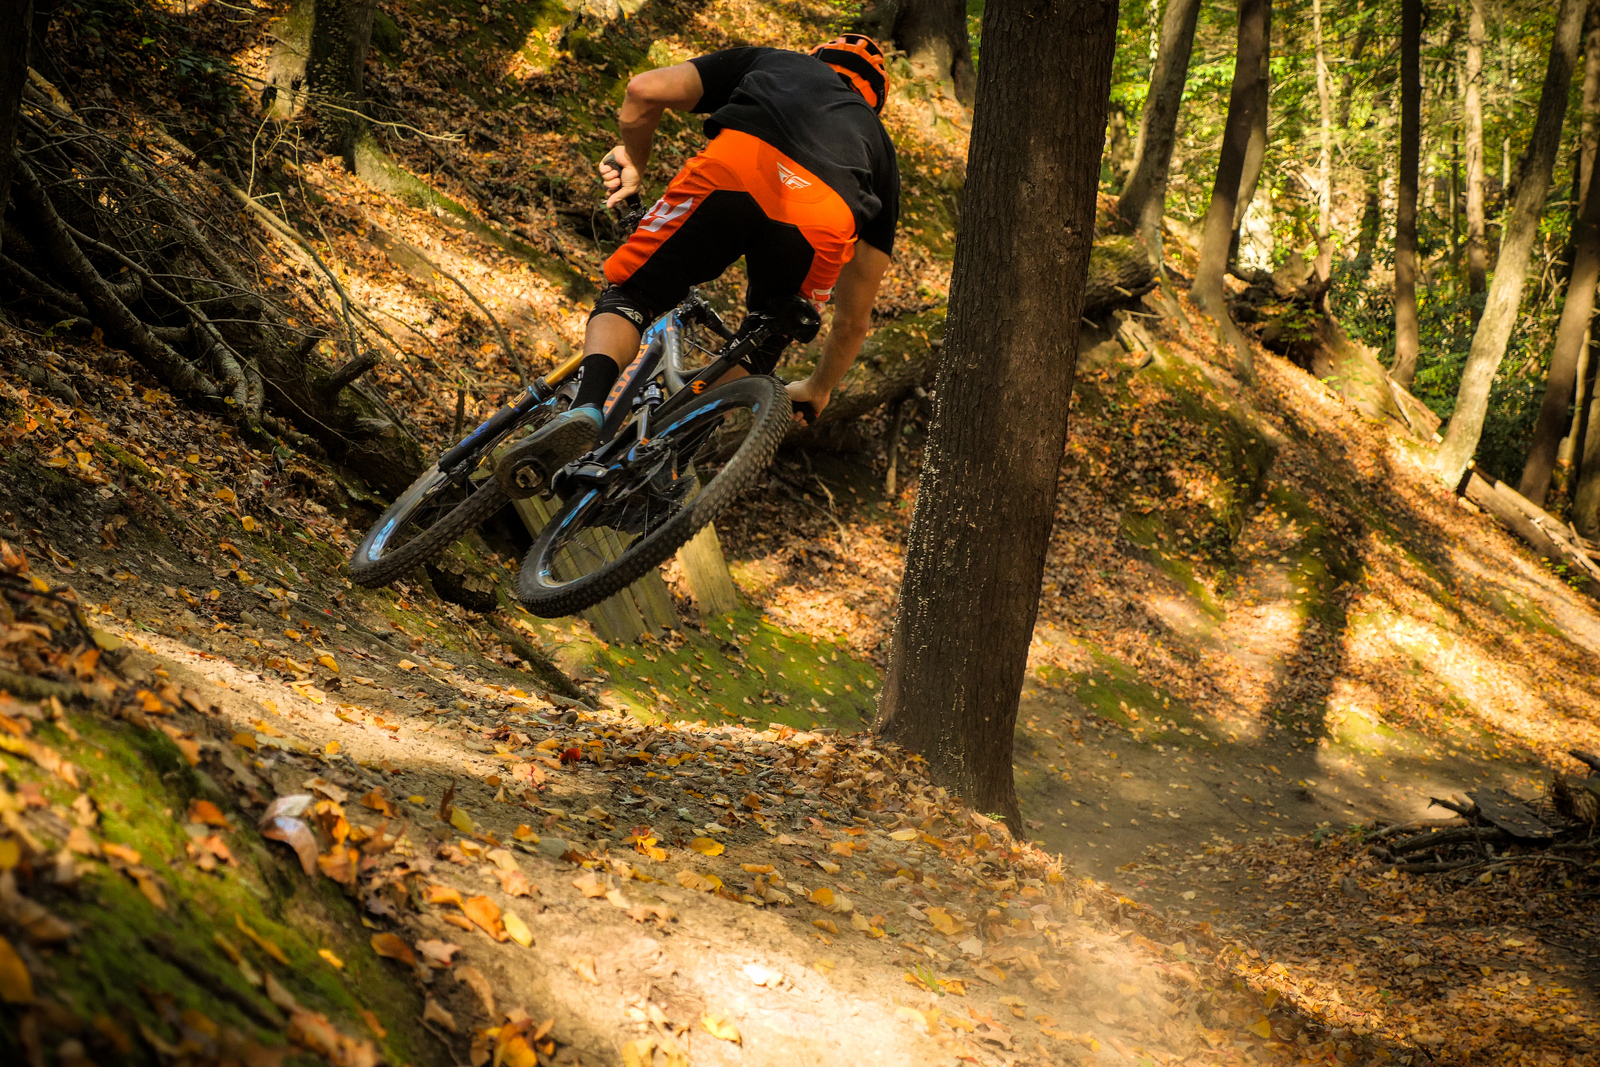 Brice Shirbach in East Stroudsburg, PA riding Glen Park trails